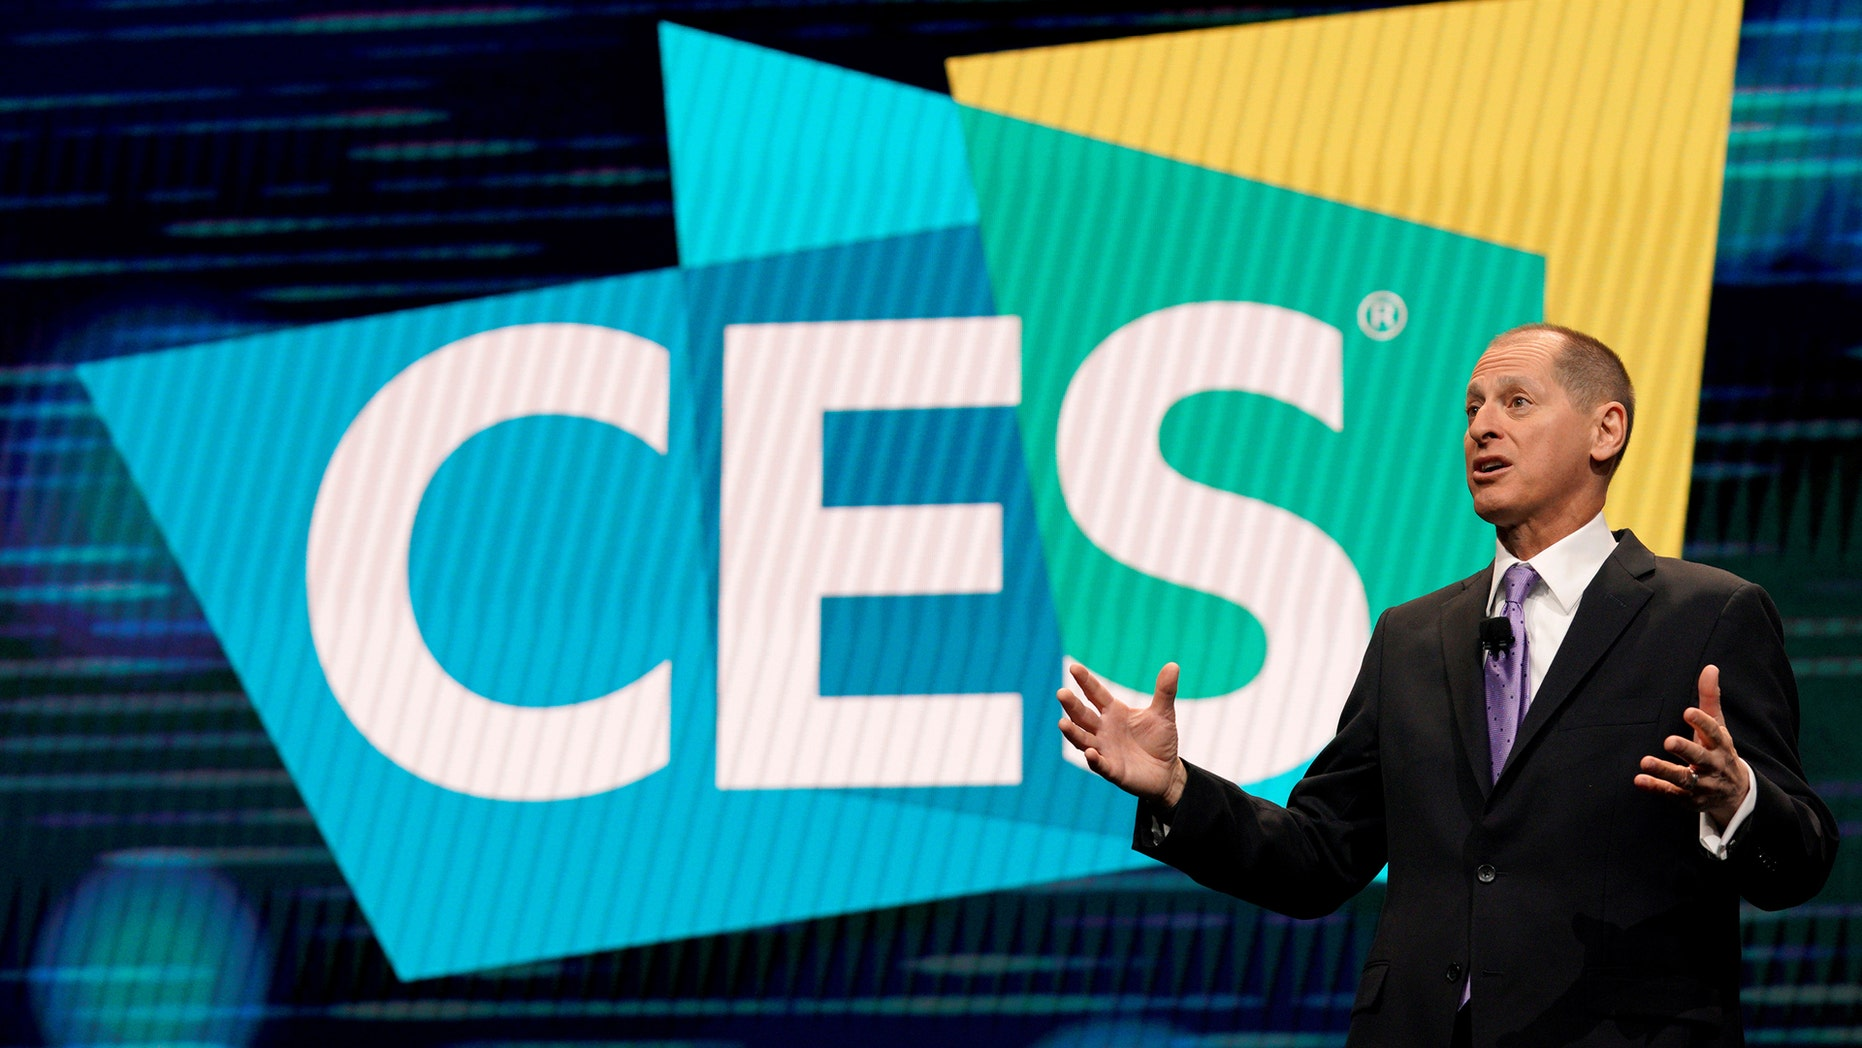 Gary Shapiro, CEO of the Consumer Technology Association, speaks at CES in Las Vegas, Nevada, U.S. Jan. 9, 2018. (REUTERS/Rick Wilking)